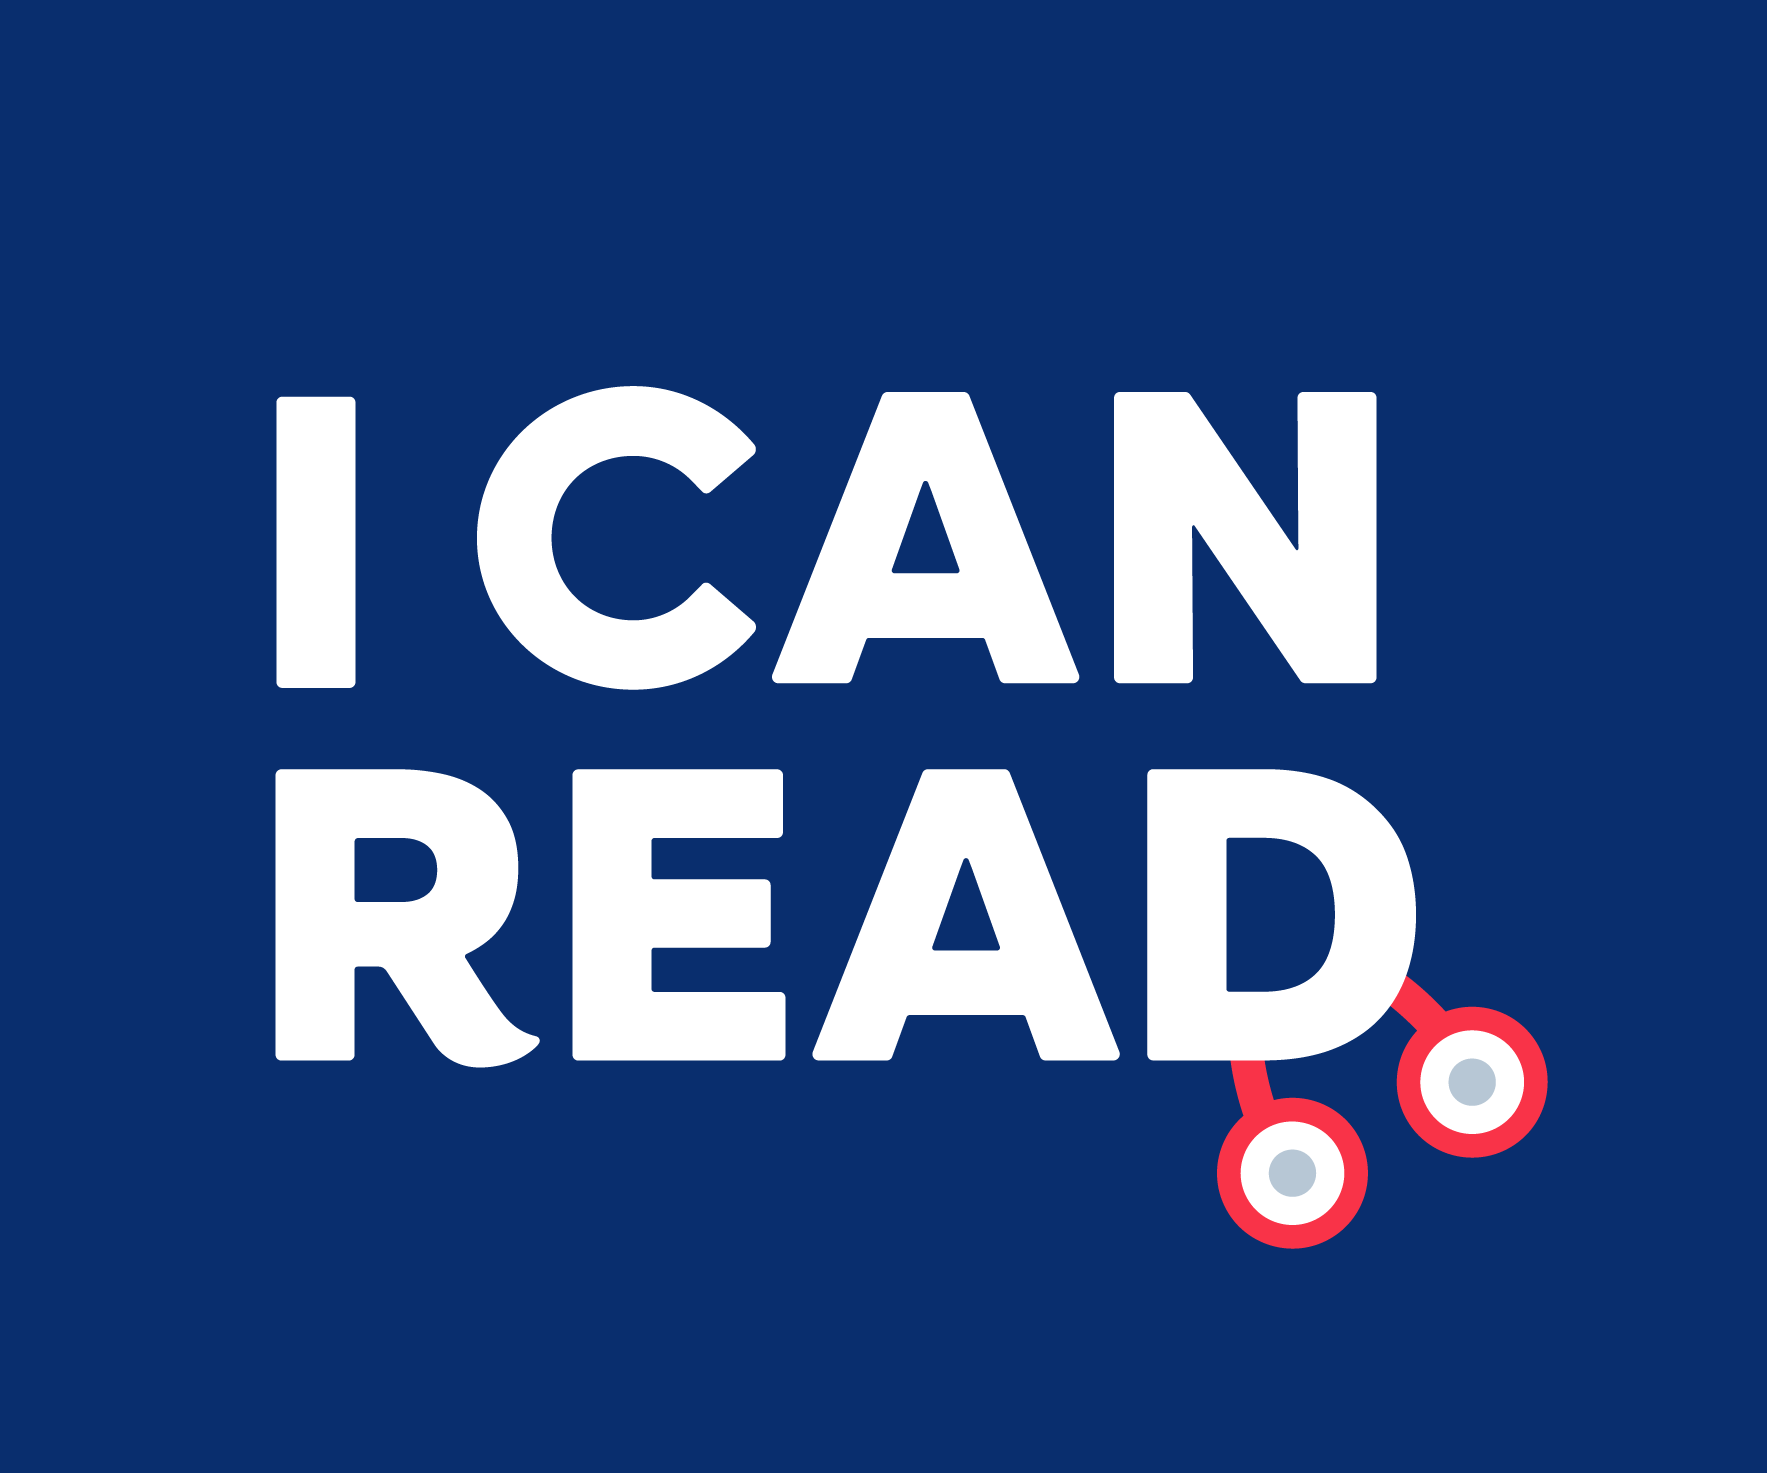 I Can Read Hanoi